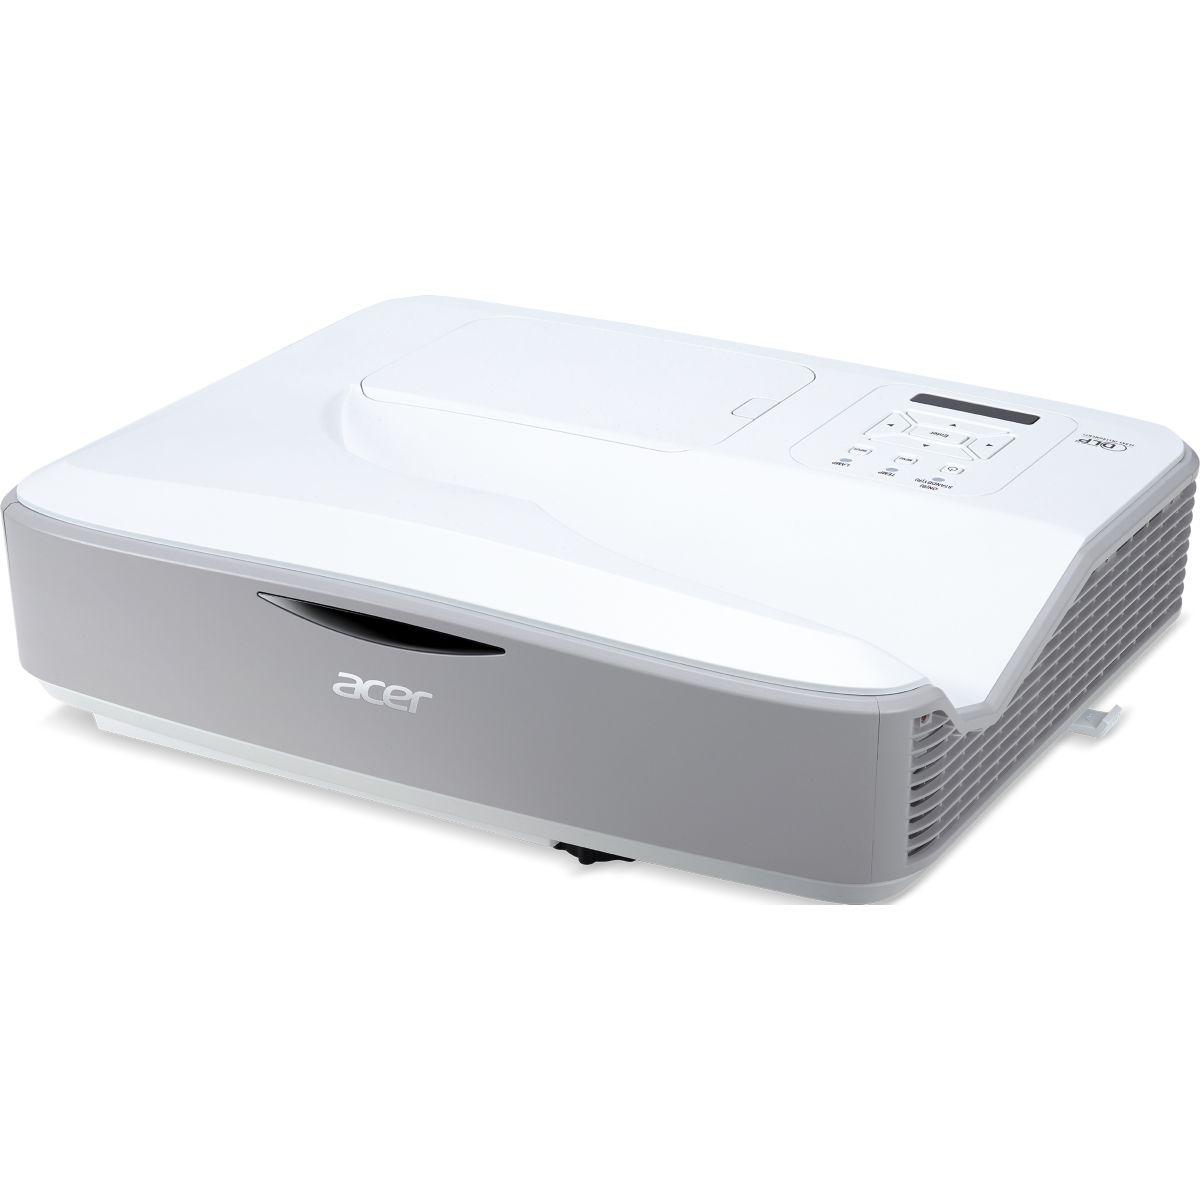 Vid�oprojecteur home cin�ma acer u5530 - 5% de remise imm�diate avec le code : deal5 (photo)